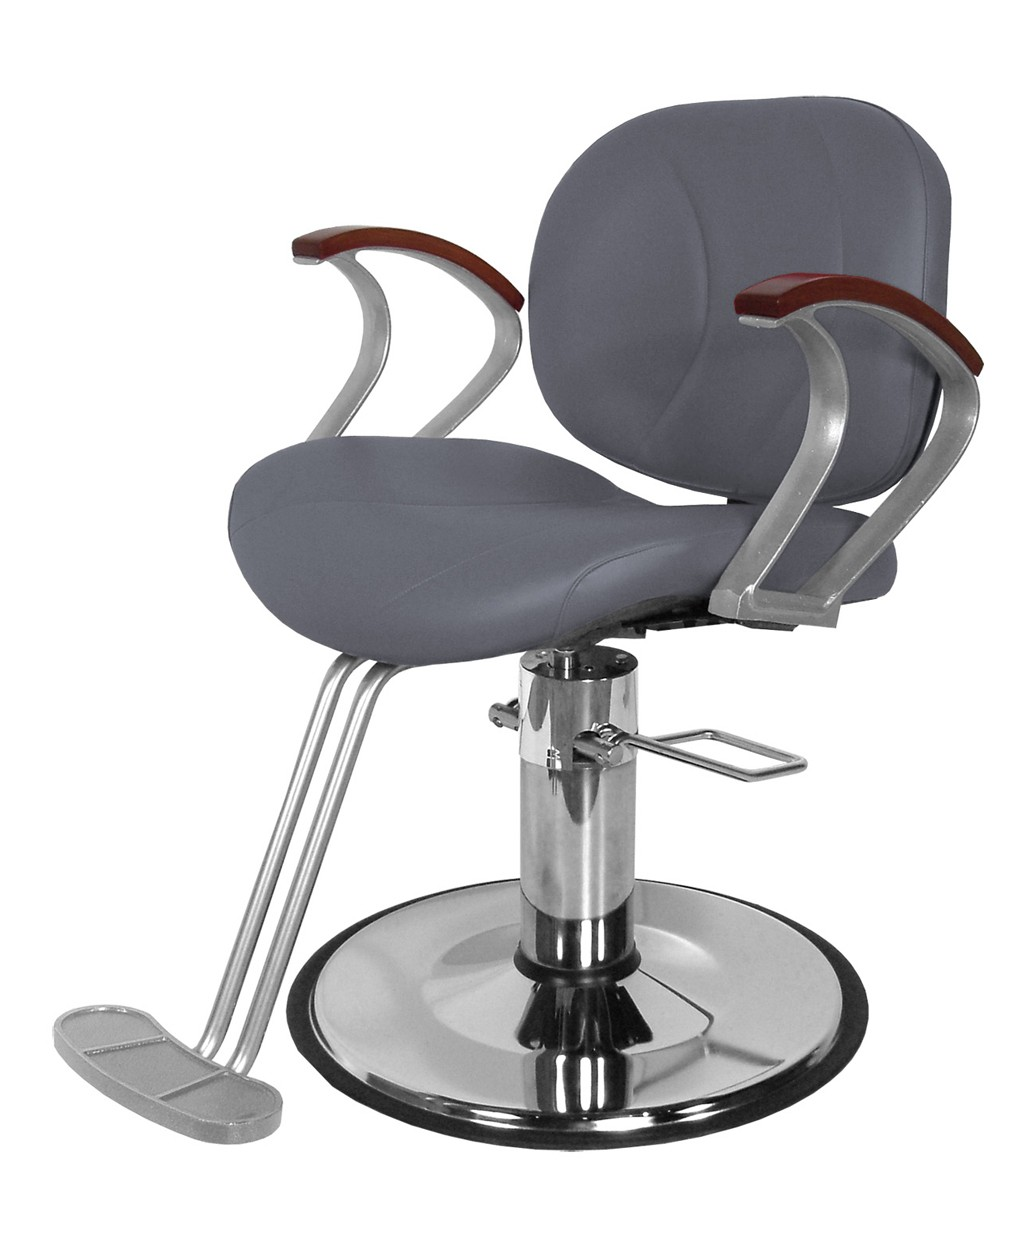 5500 Belize Styling Chair with Standard Base